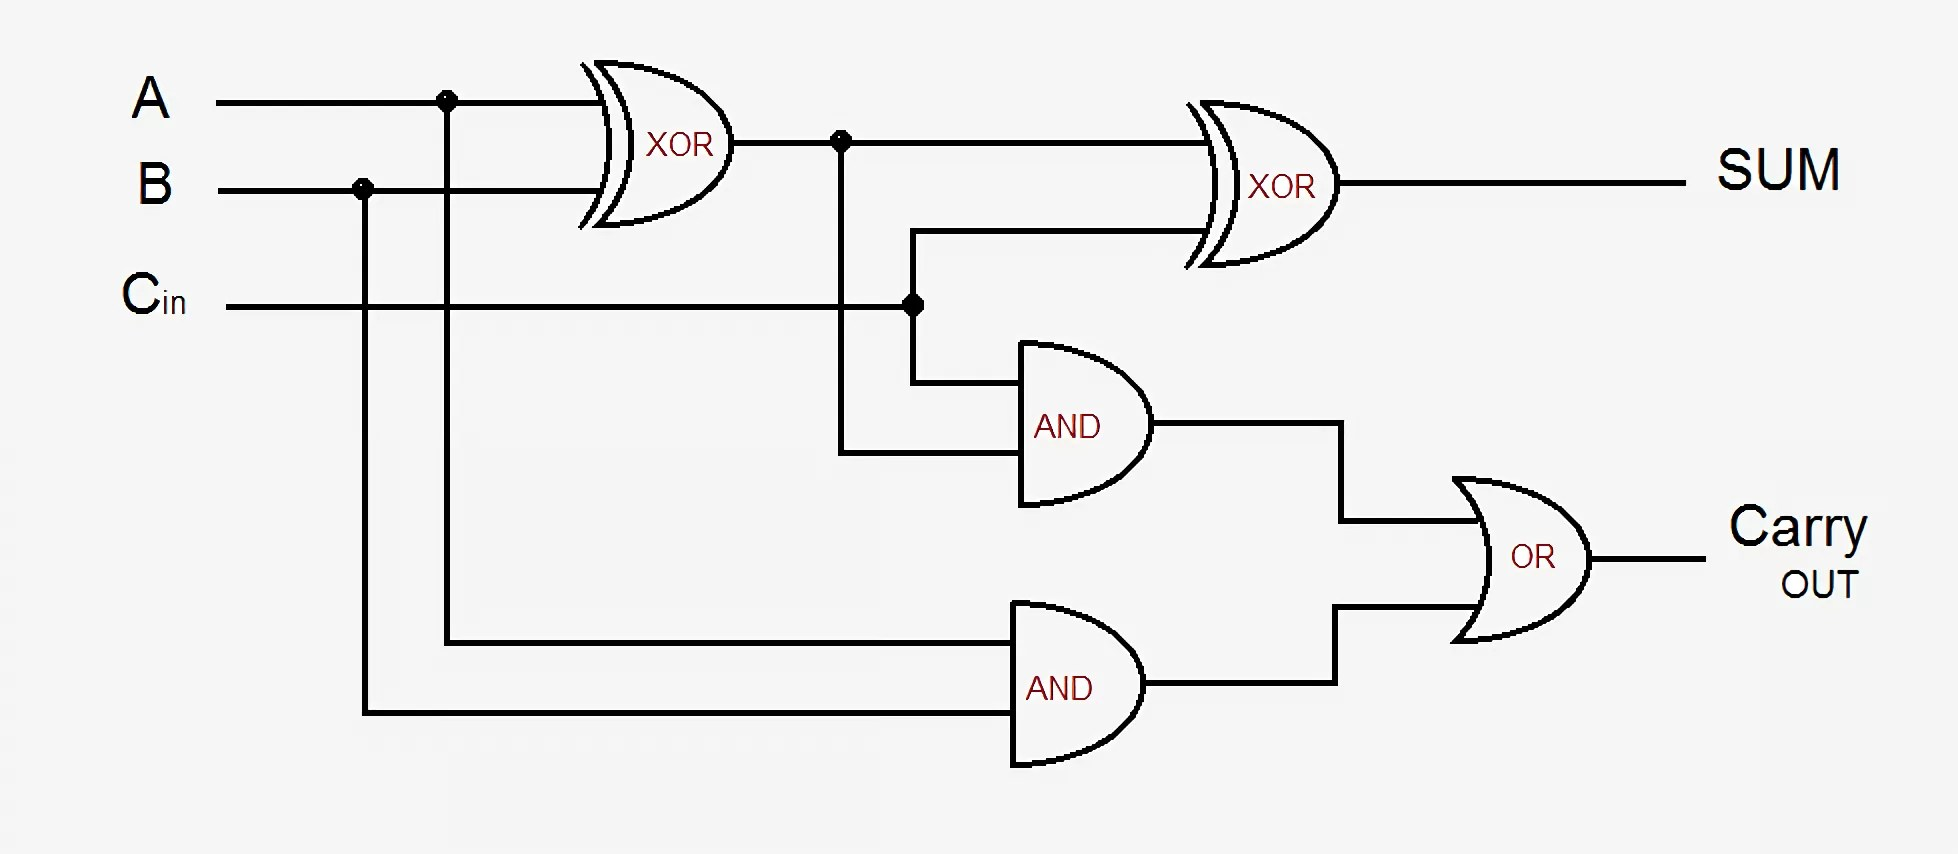 2 Bit Adder Schematic